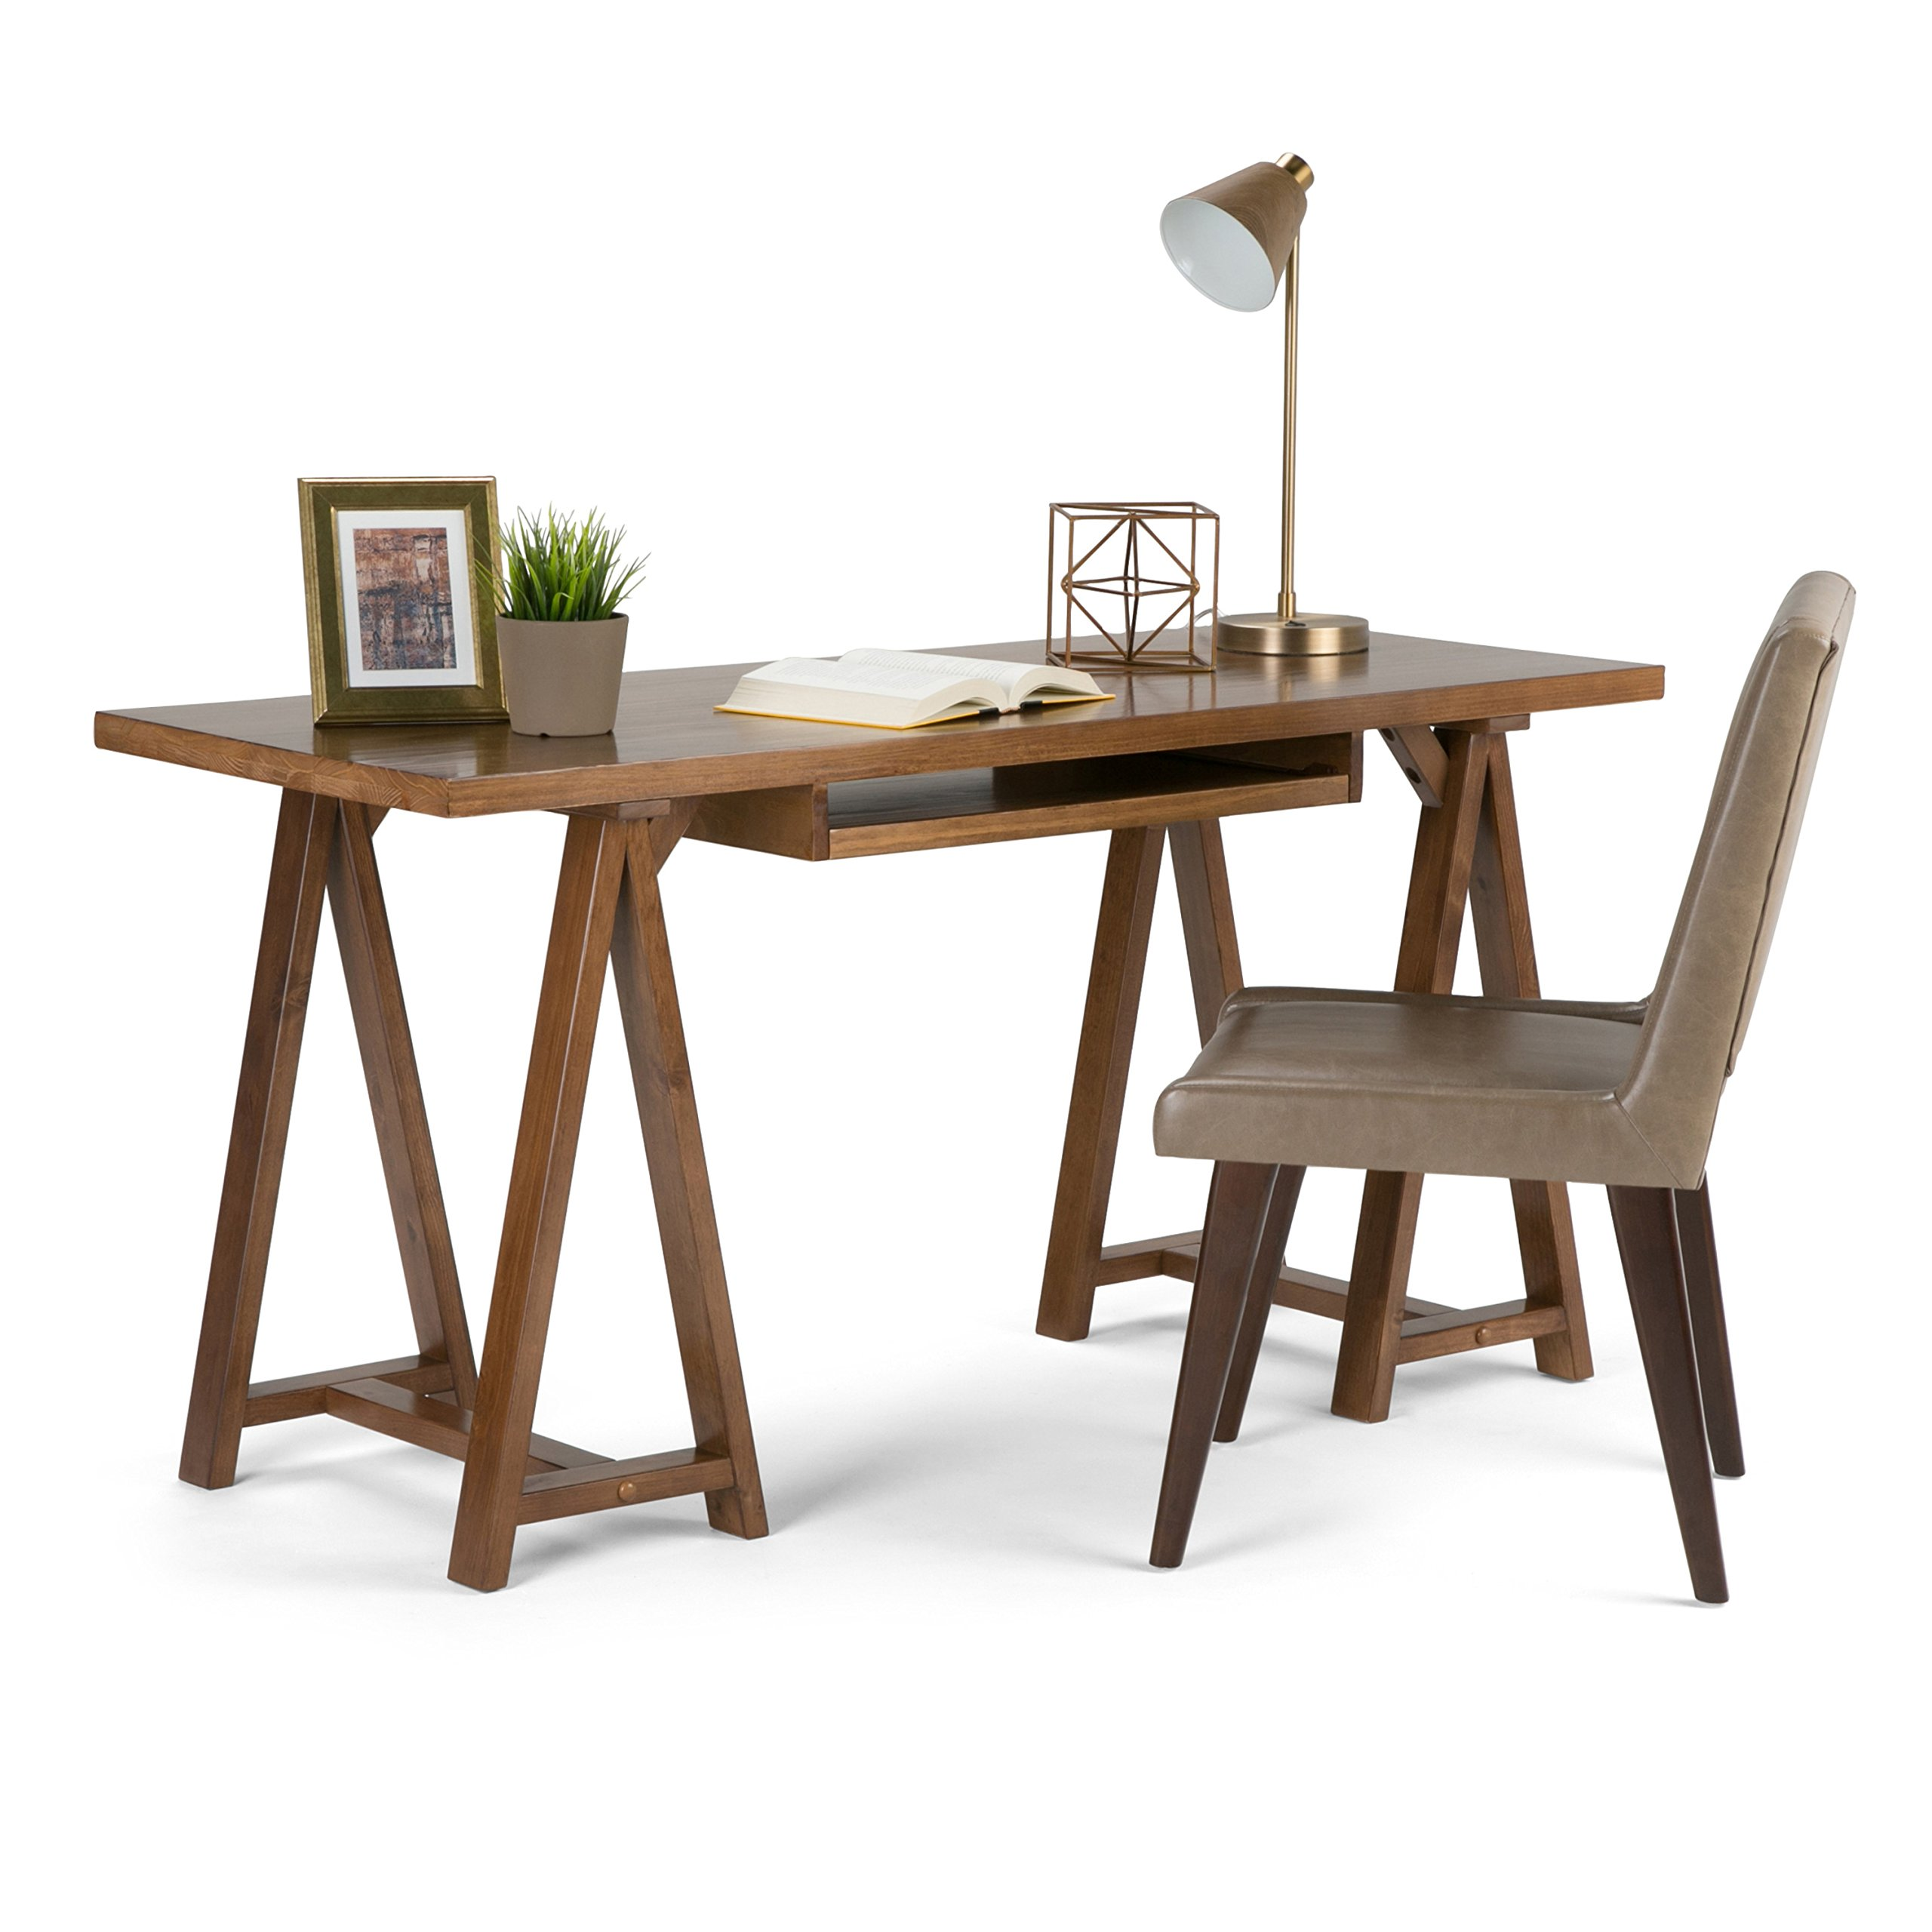 Simpli Home Sawhorse Solid Wood Office Desk, Medium Saddle Brown by Simpli Home (Image #2)